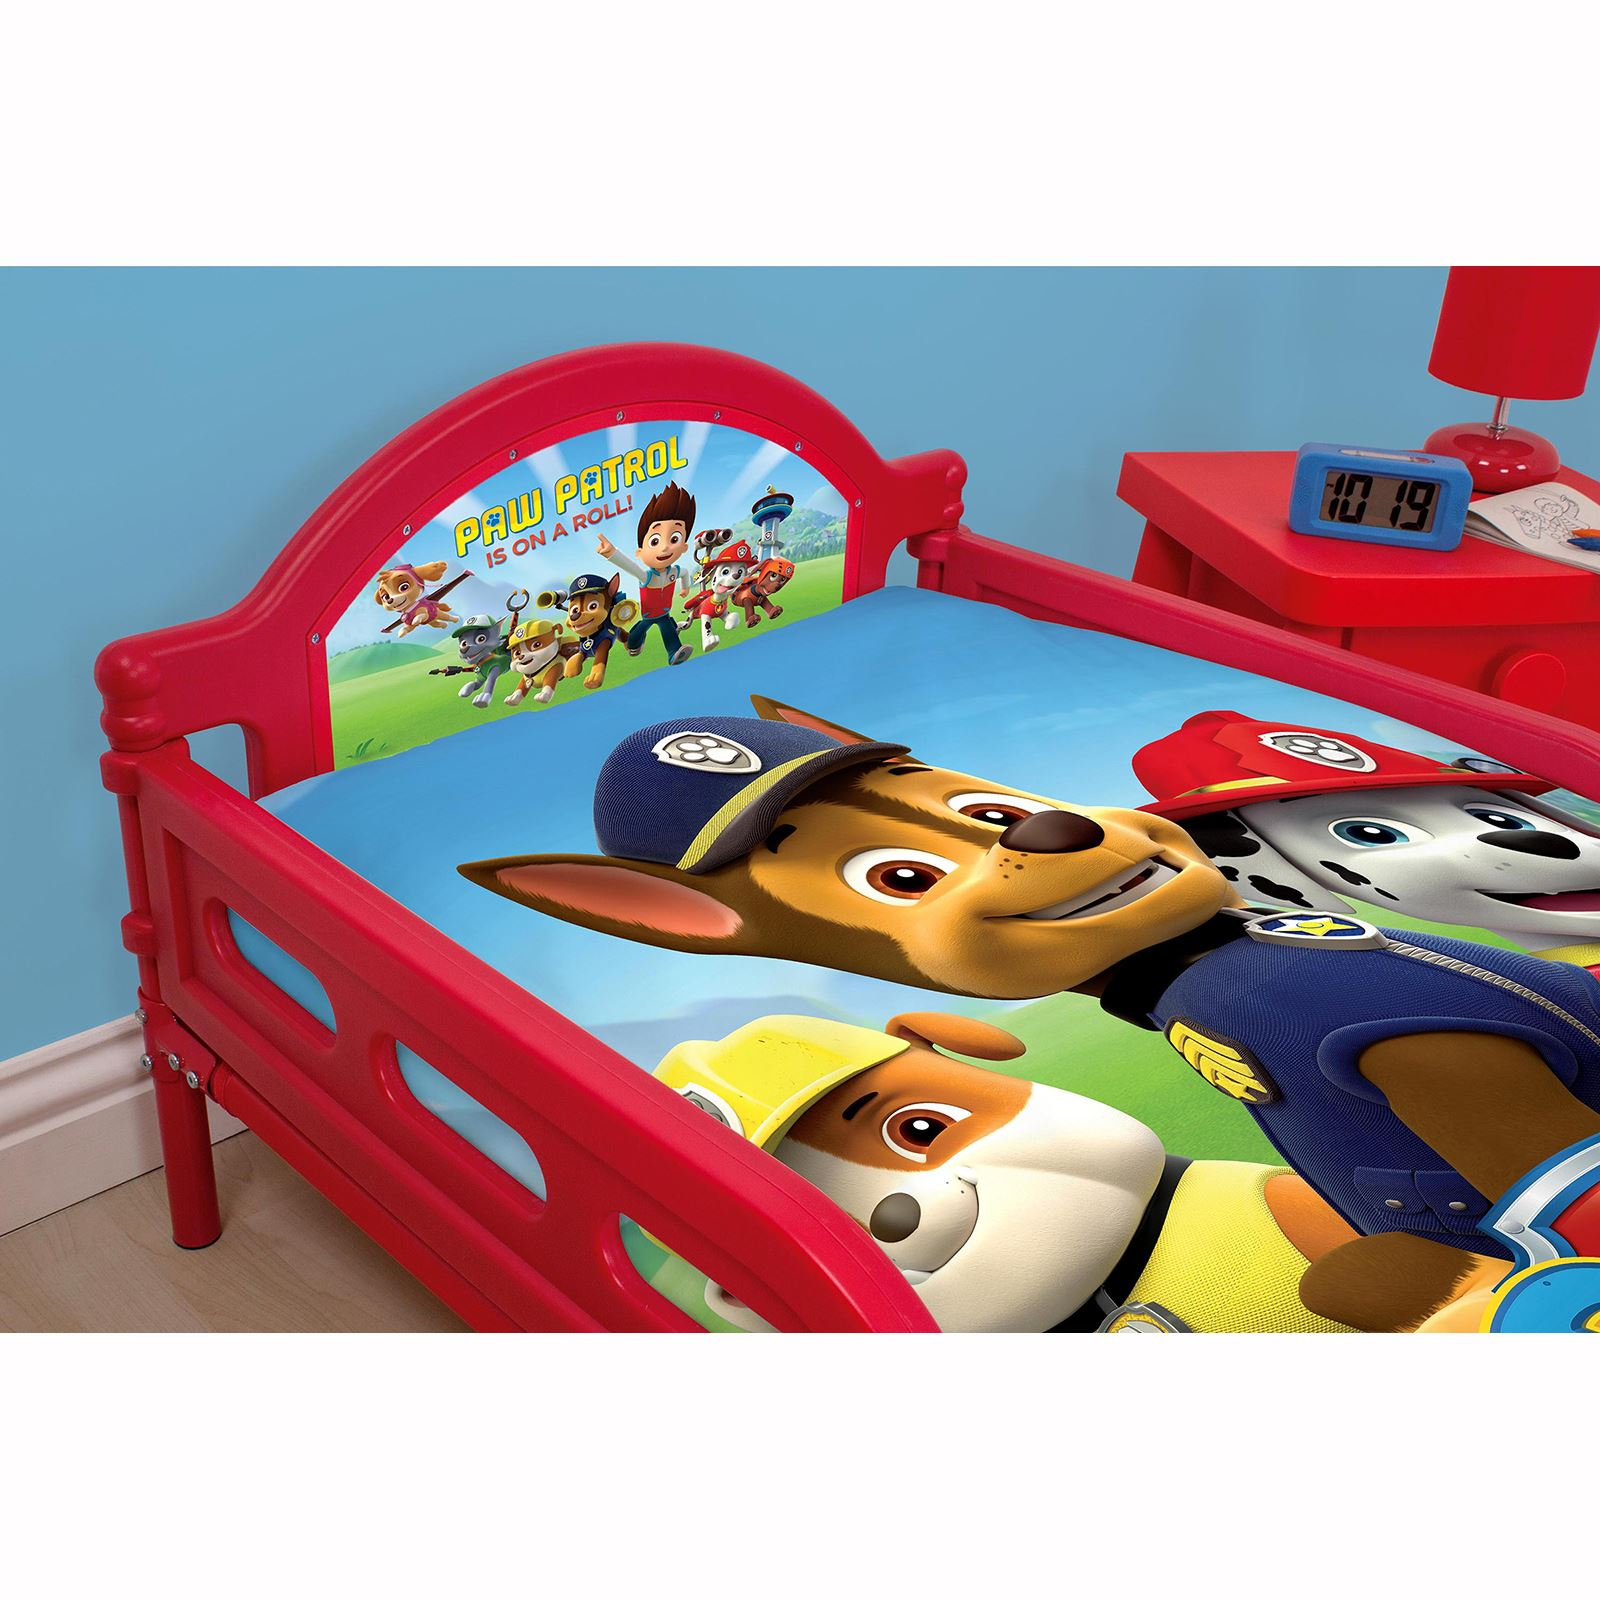 paw patrol rescue junior kleinkind bett mit oder ohne neue matratze ebay. Black Bedroom Furniture Sets. Home Design Ideas